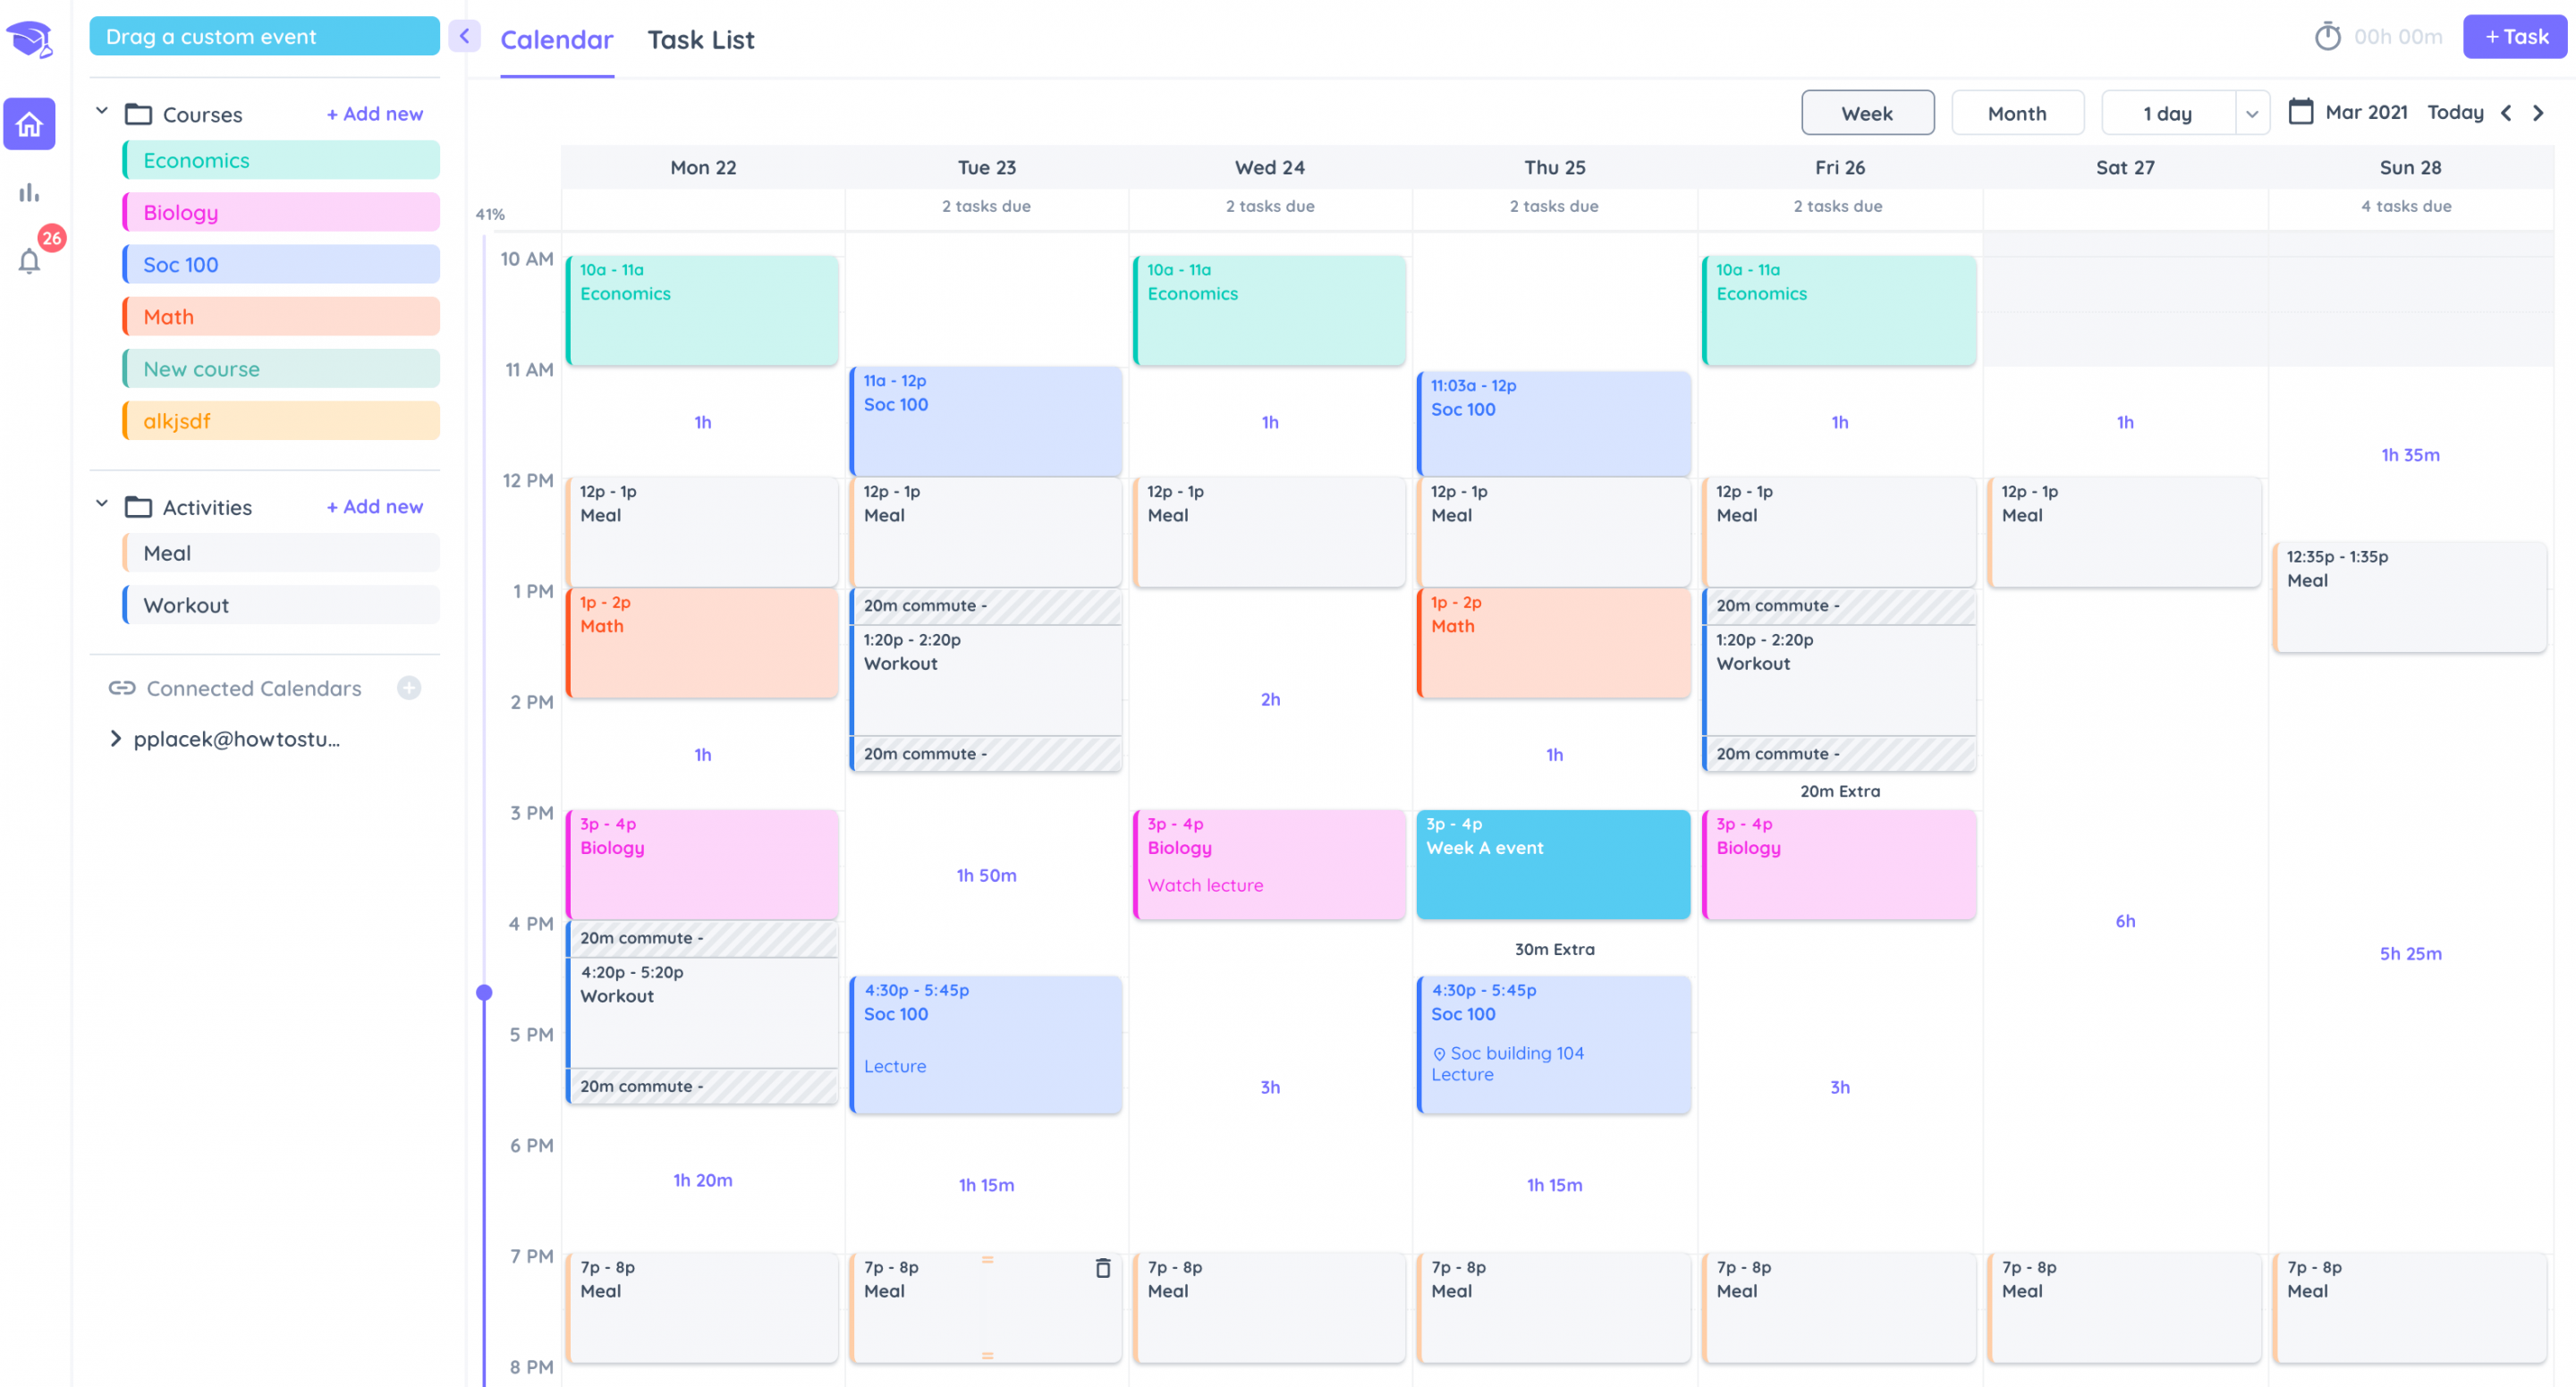 Study Timetable in Shovel ready for timeboxing